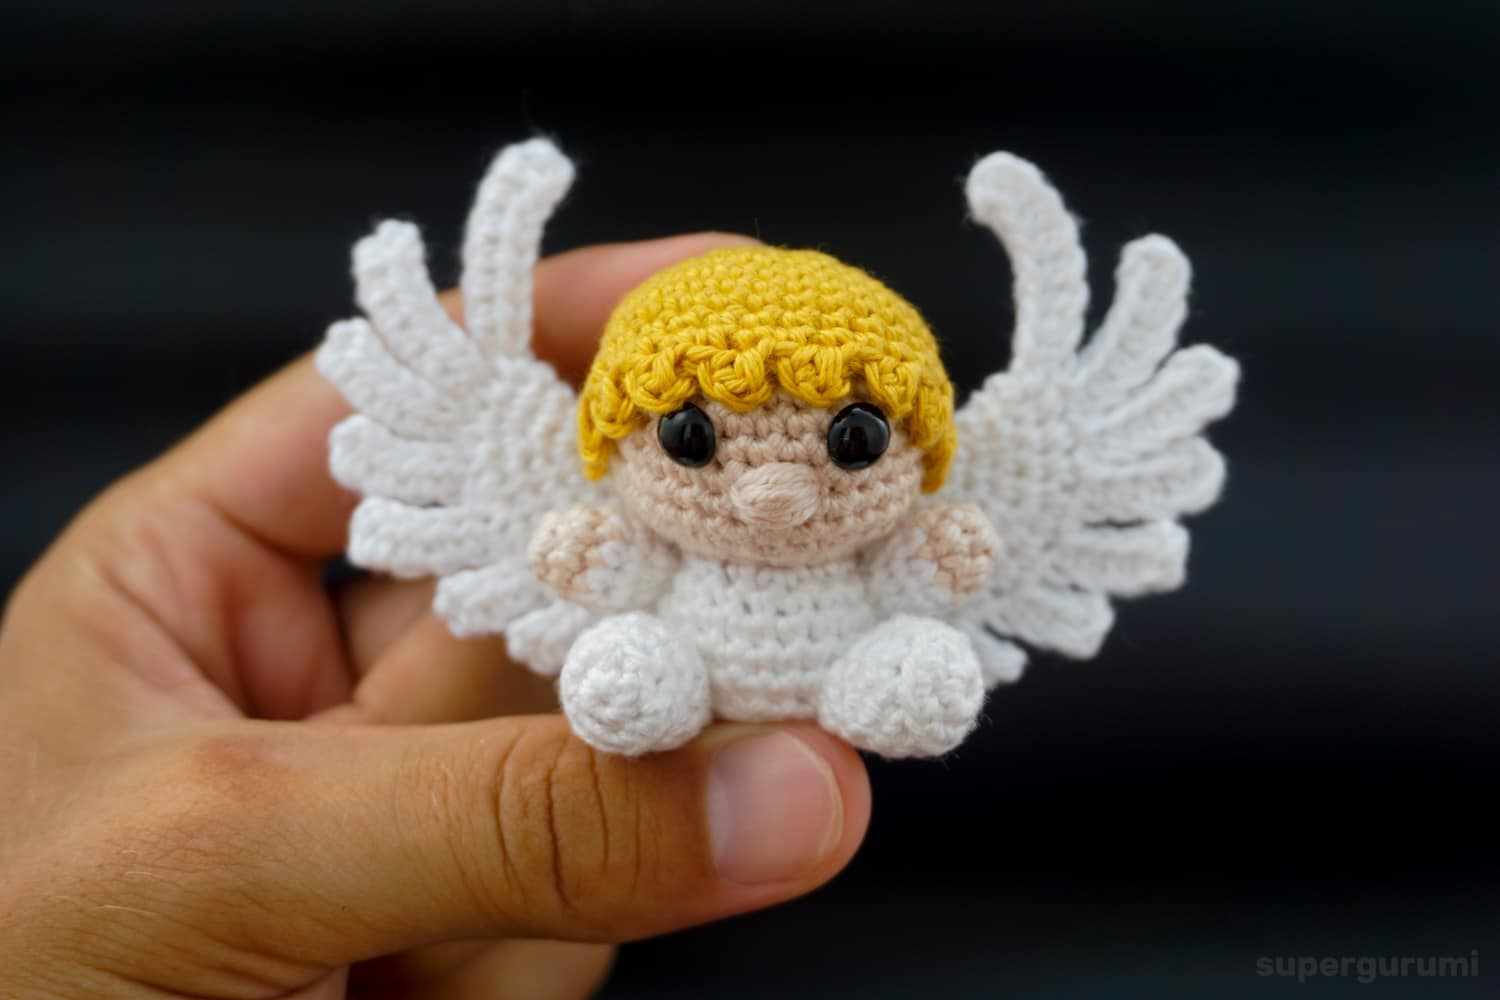 Amigurumi crochet angel pattern supergurumi the depicted amigurumi angel is crocheted using a 25 mm crochet hook and the schachenmayr catania cotton and has sitting a height of 7 cm and a wingspan dt1010fo